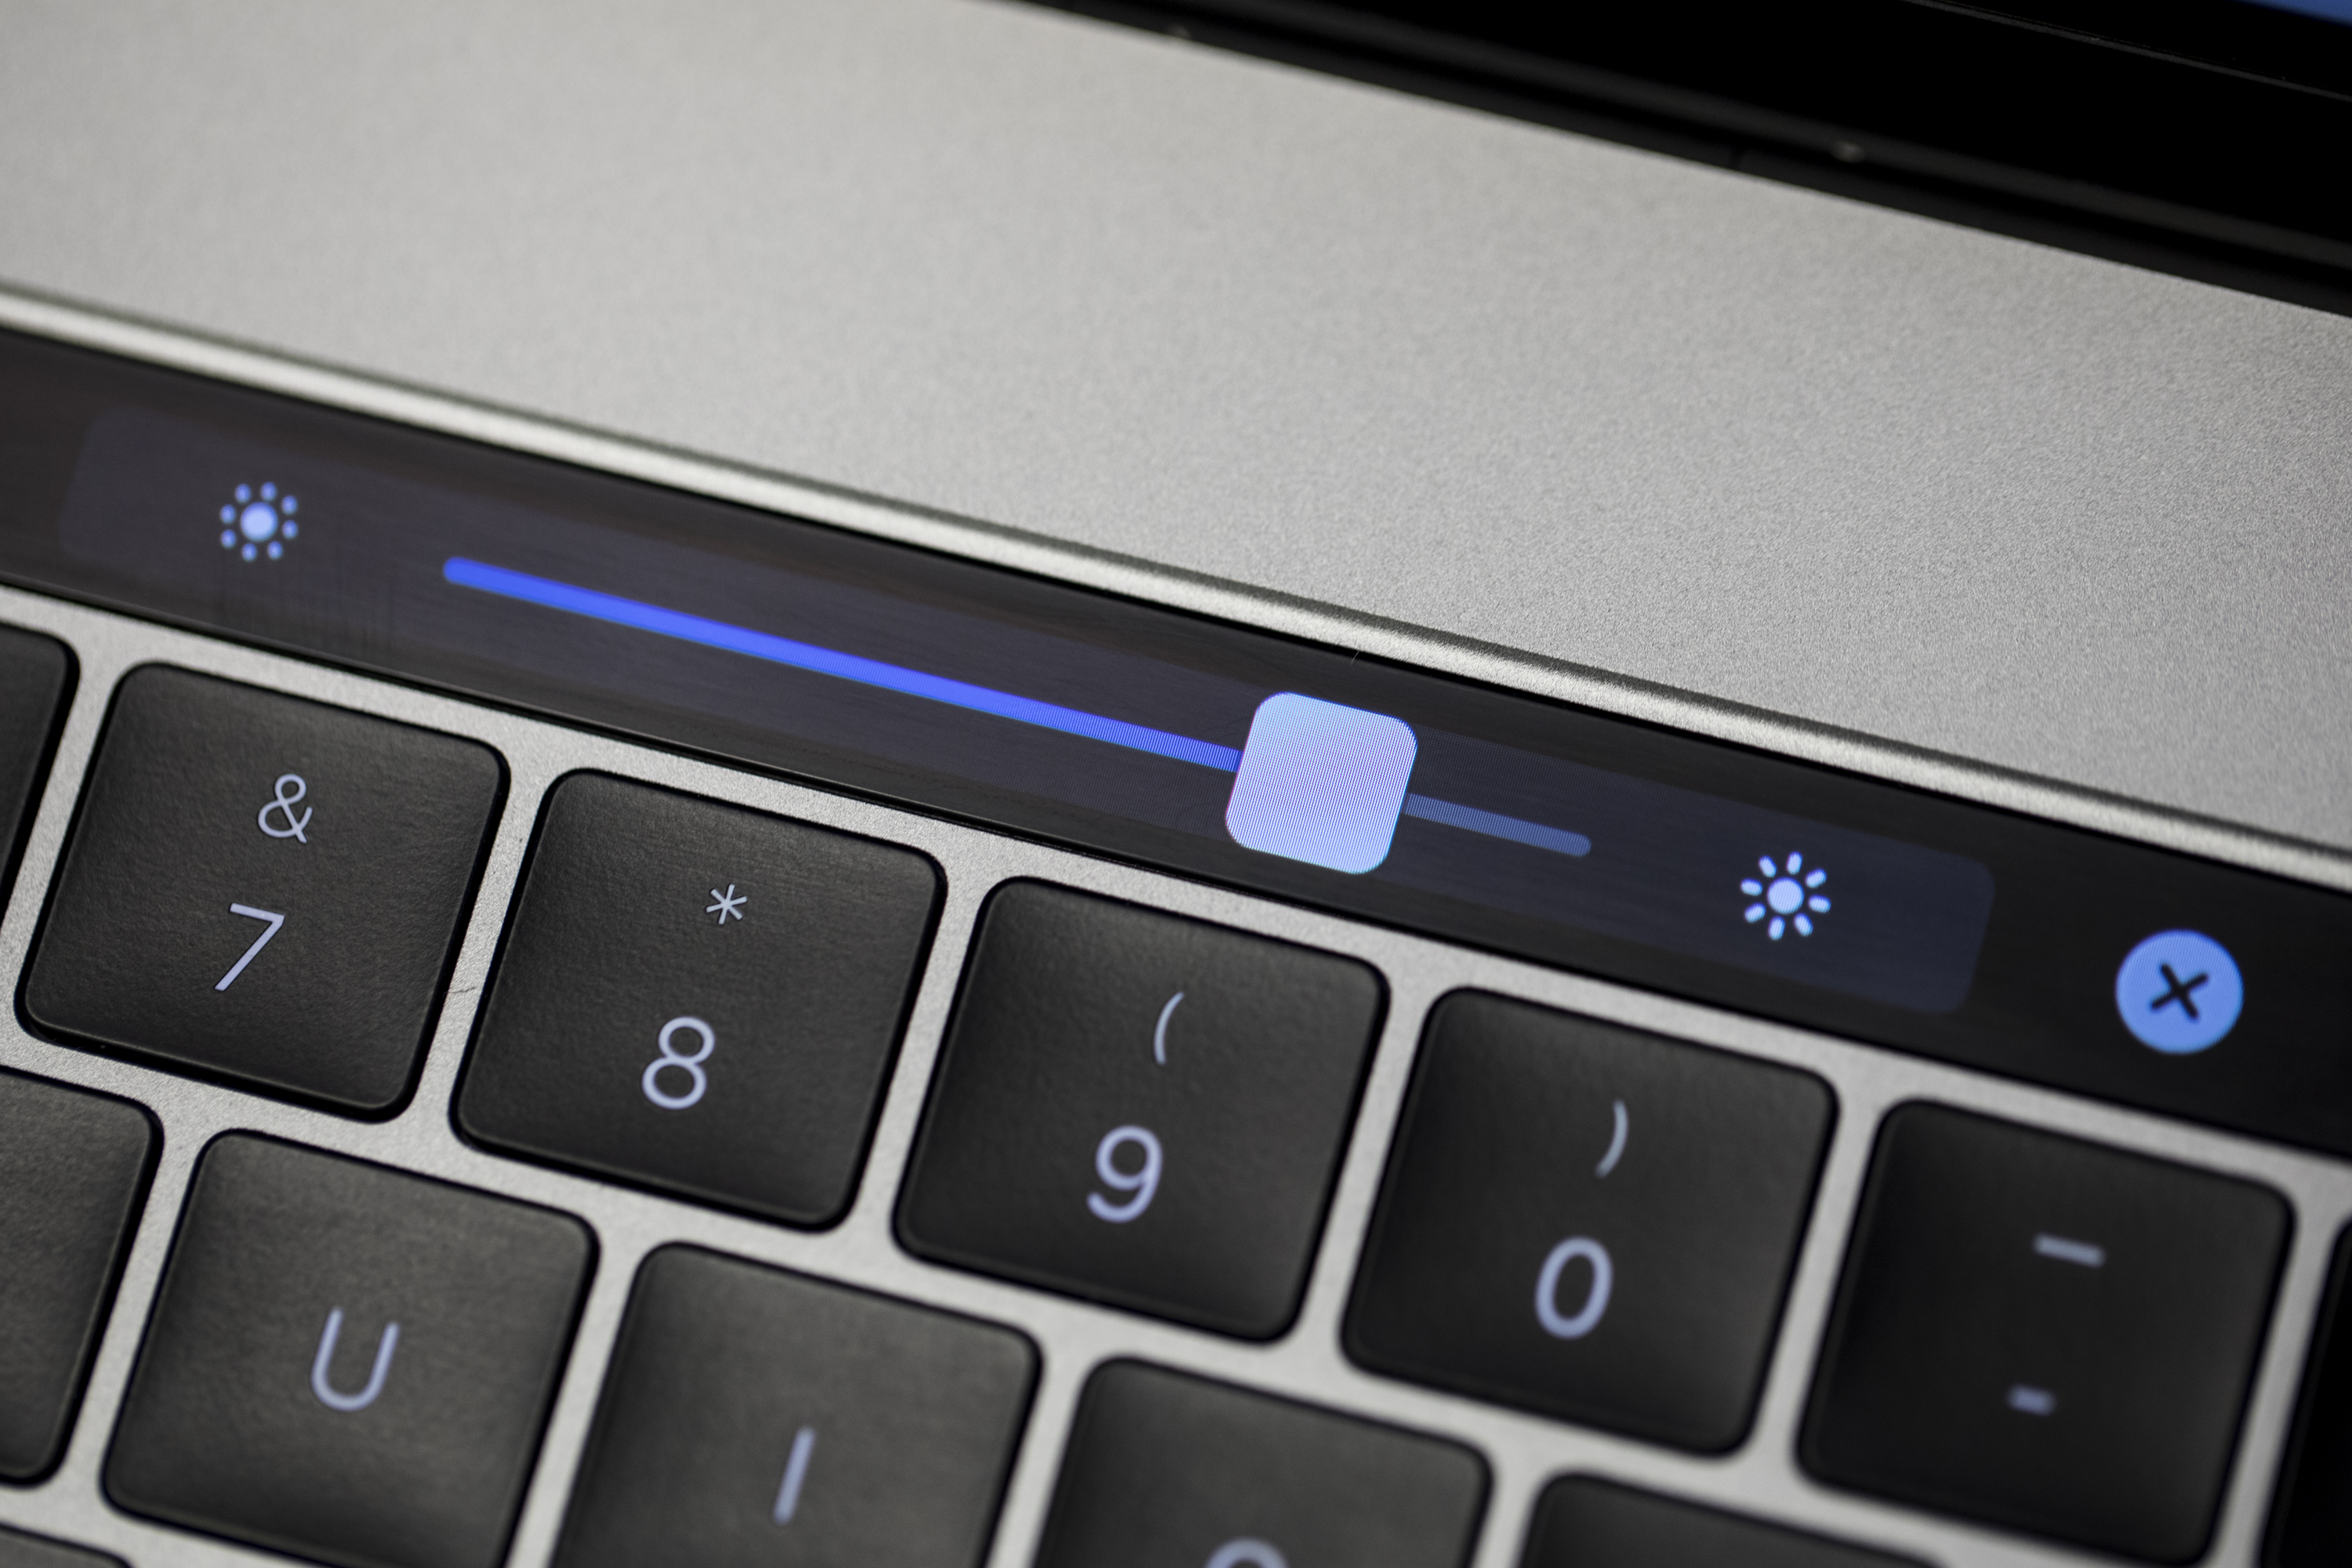 The 2016 MacBook Pro Touch Bar lets you dim the laptop's screen to save power.